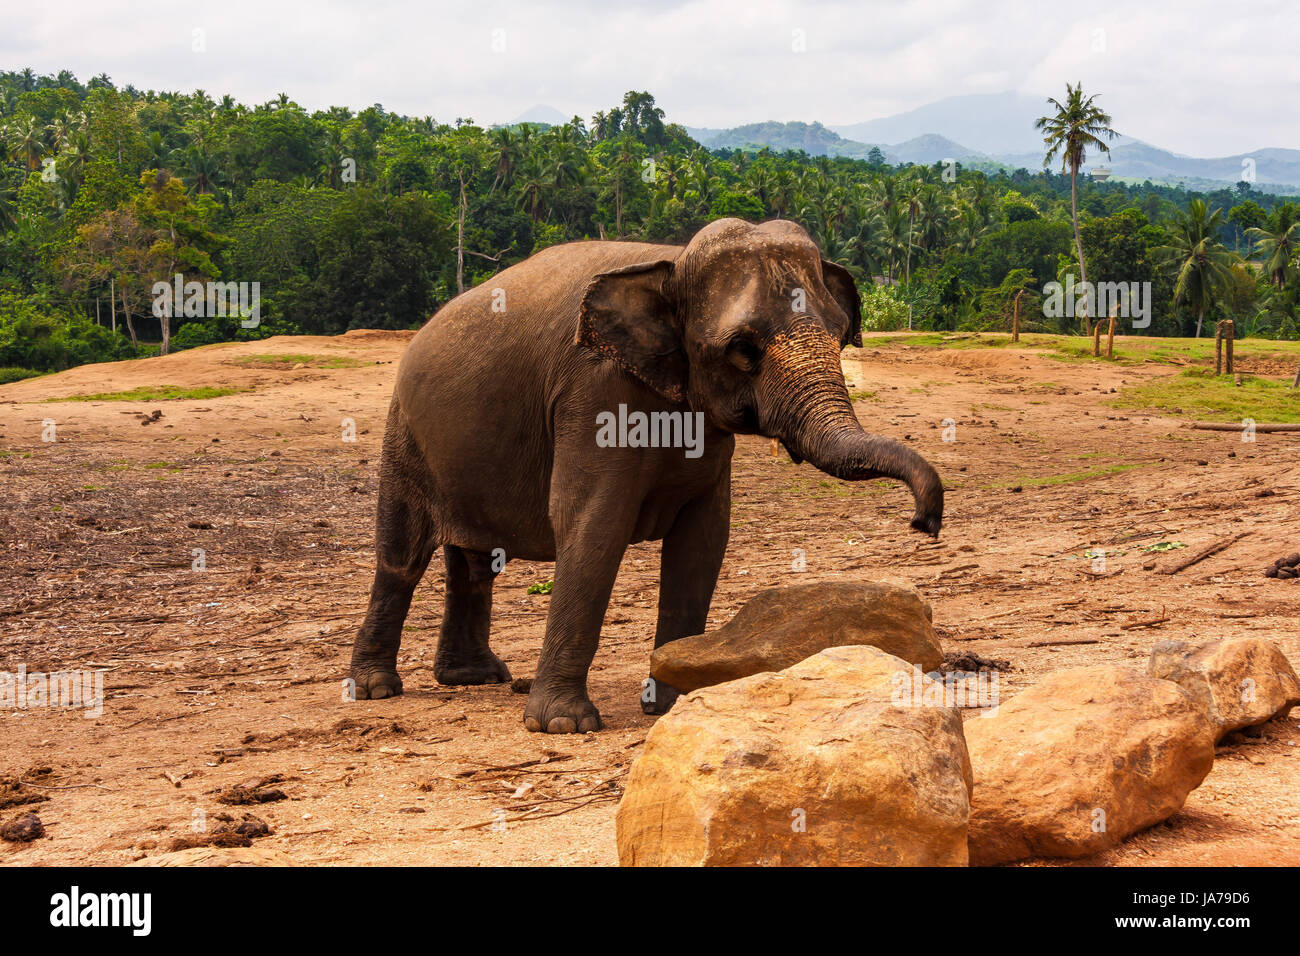 animal, elephant, conservation of nature, wildlife, nature, trunk, legs, - Stock Image